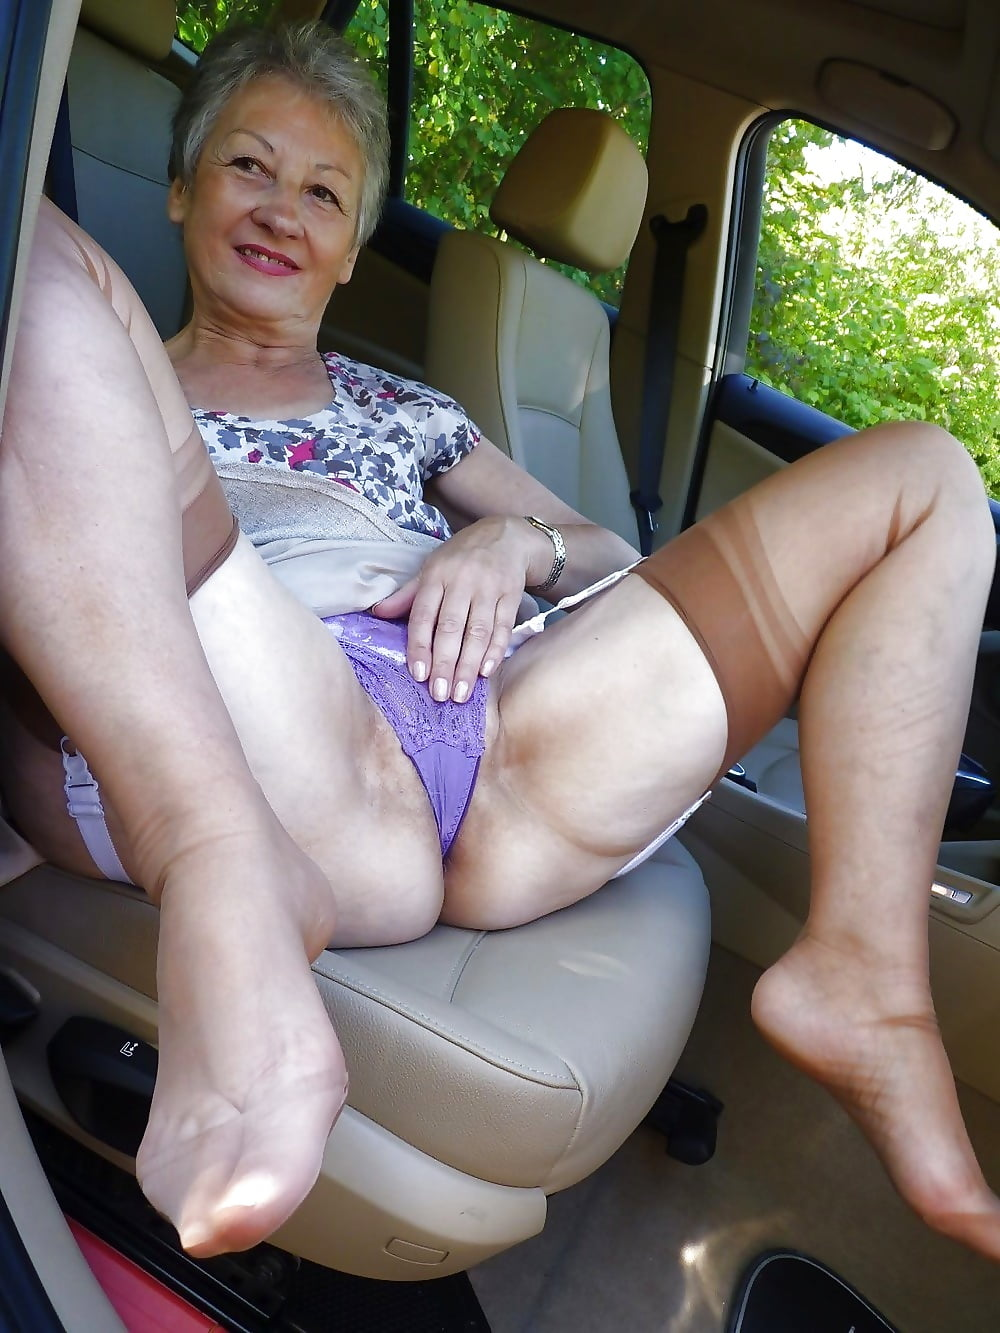 Granny upskirt panties, young wet clean pussy